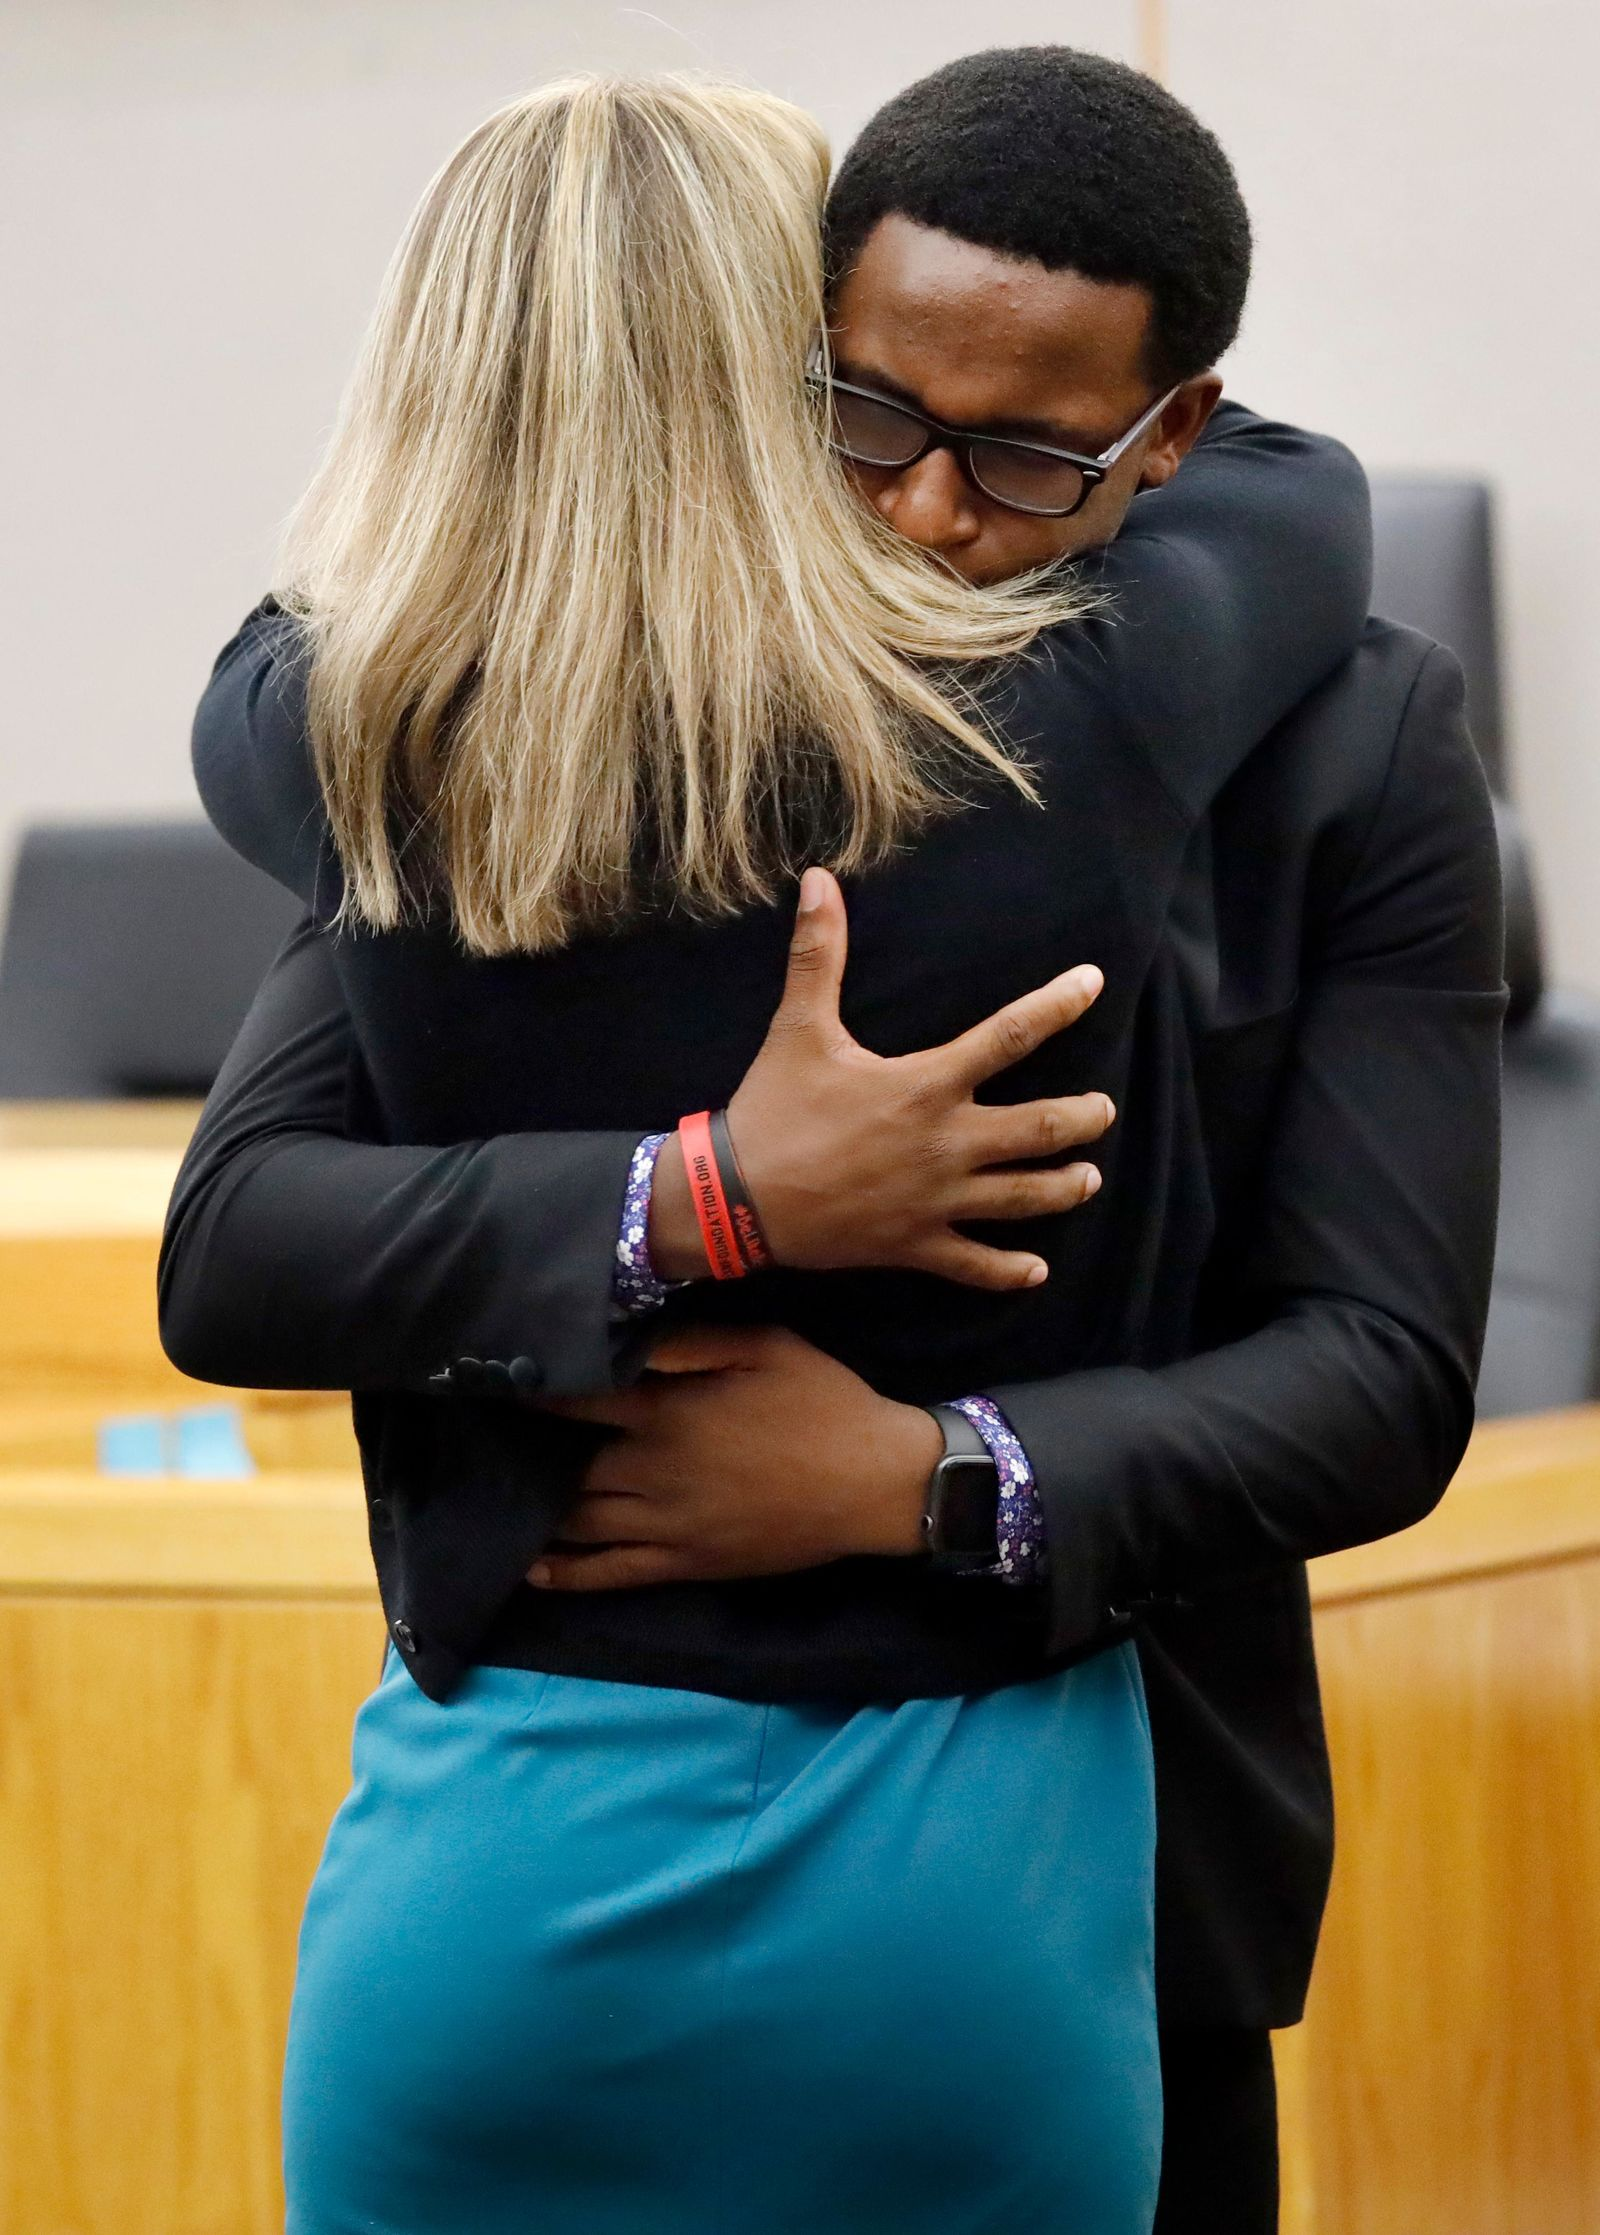 Botham Jean's younger brother Brandt Jean hugs former Dallas police officer Amber Guyger after delivering his impact statement to her in Dallas, Wednesday, Oct. 2, 2019. Guyger has been sentenced to 10 years in prison for killing her black neighbor in his apartment, which she said she mistook for her own unit one floor below. (Tom Fox/The Dallas Morning News via AP, Pool)